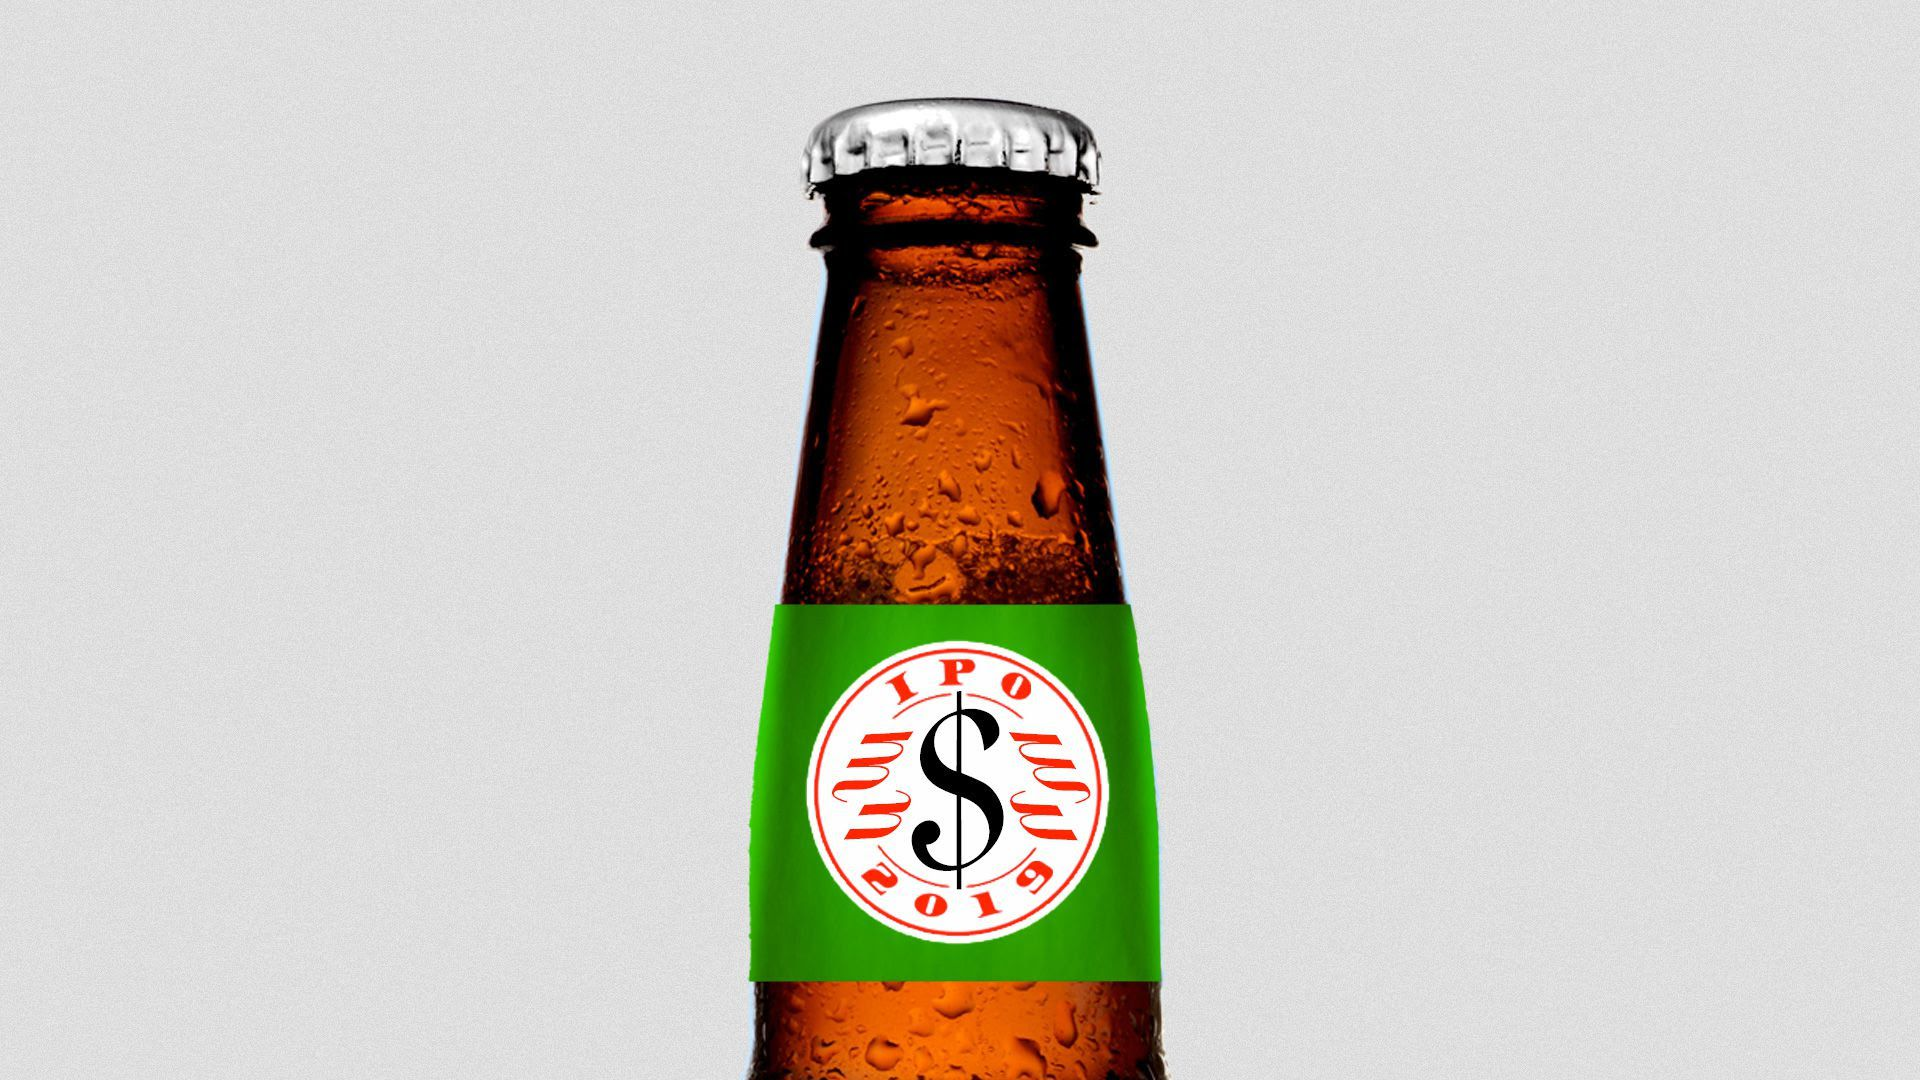 A mock bottle of an IPA beer with the logo reading IPO instead.